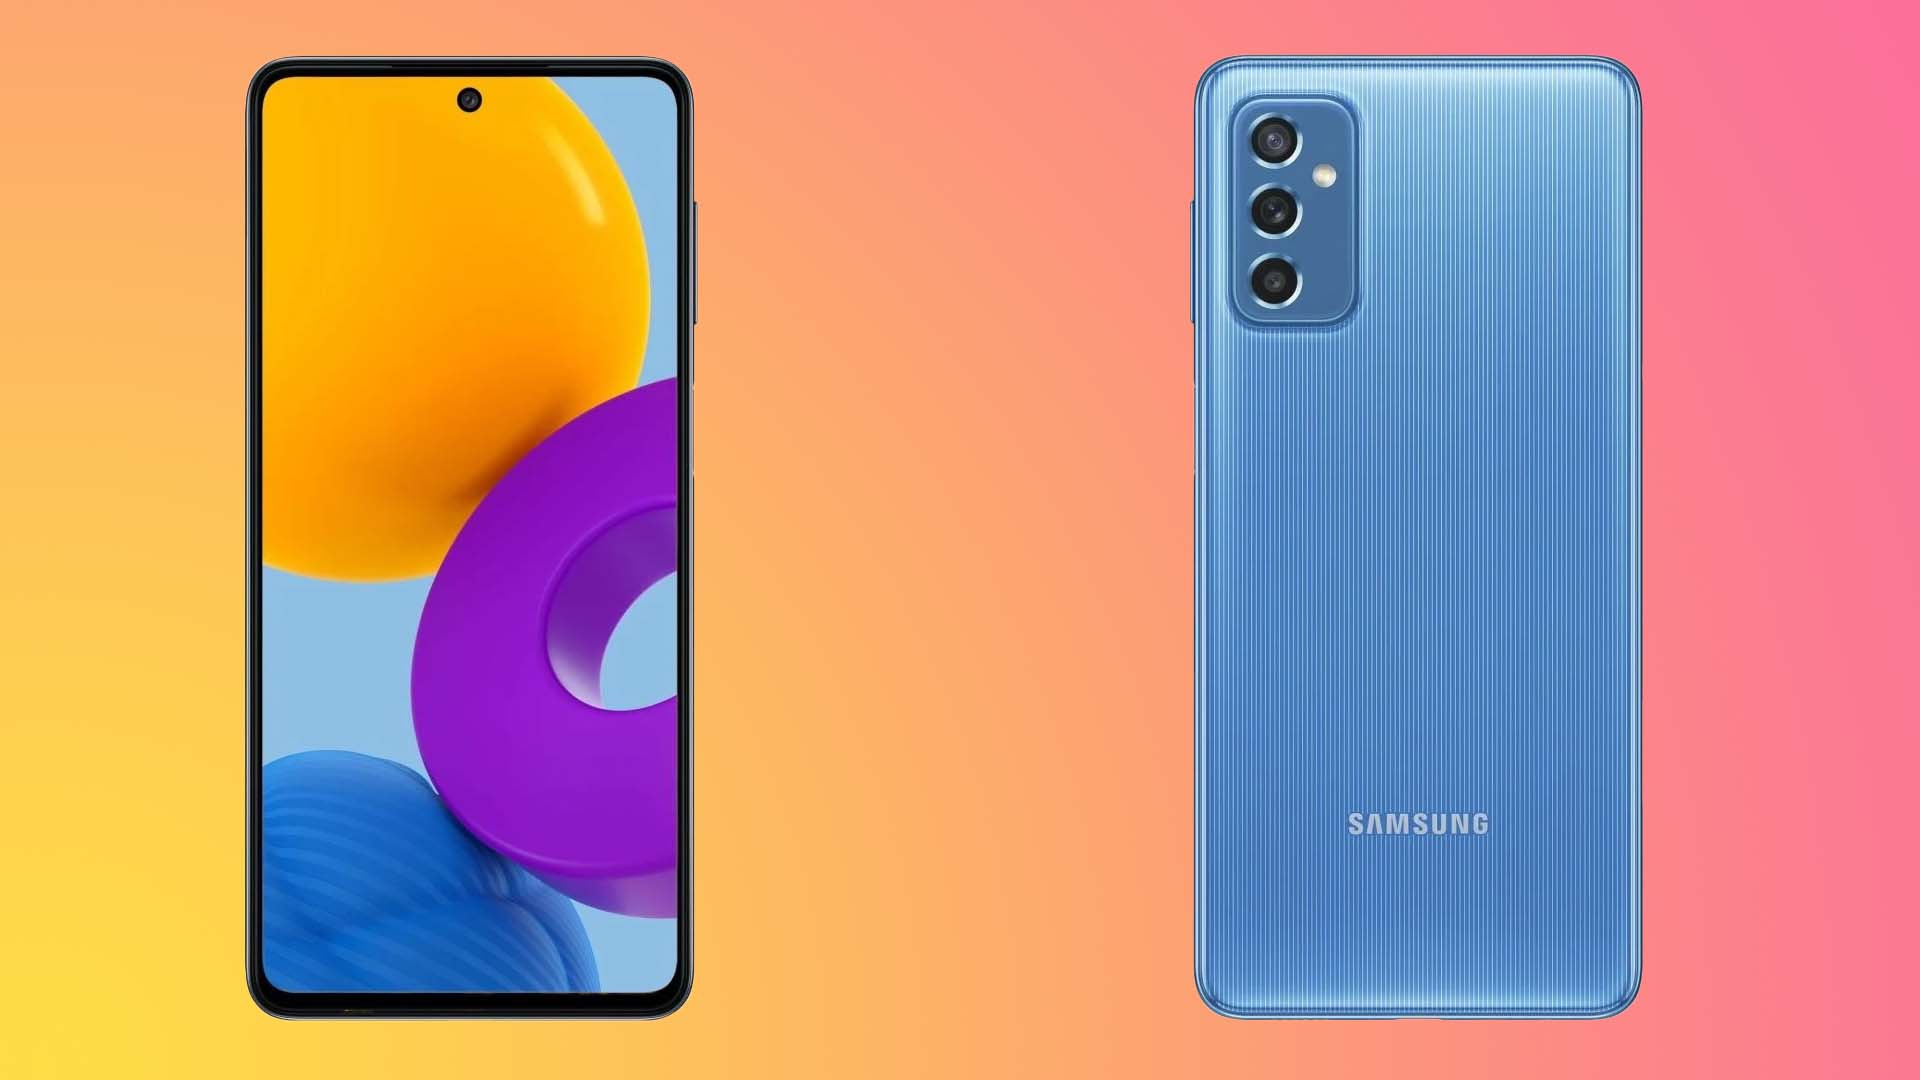 Galaxy M52 5G is coming to India on September 19